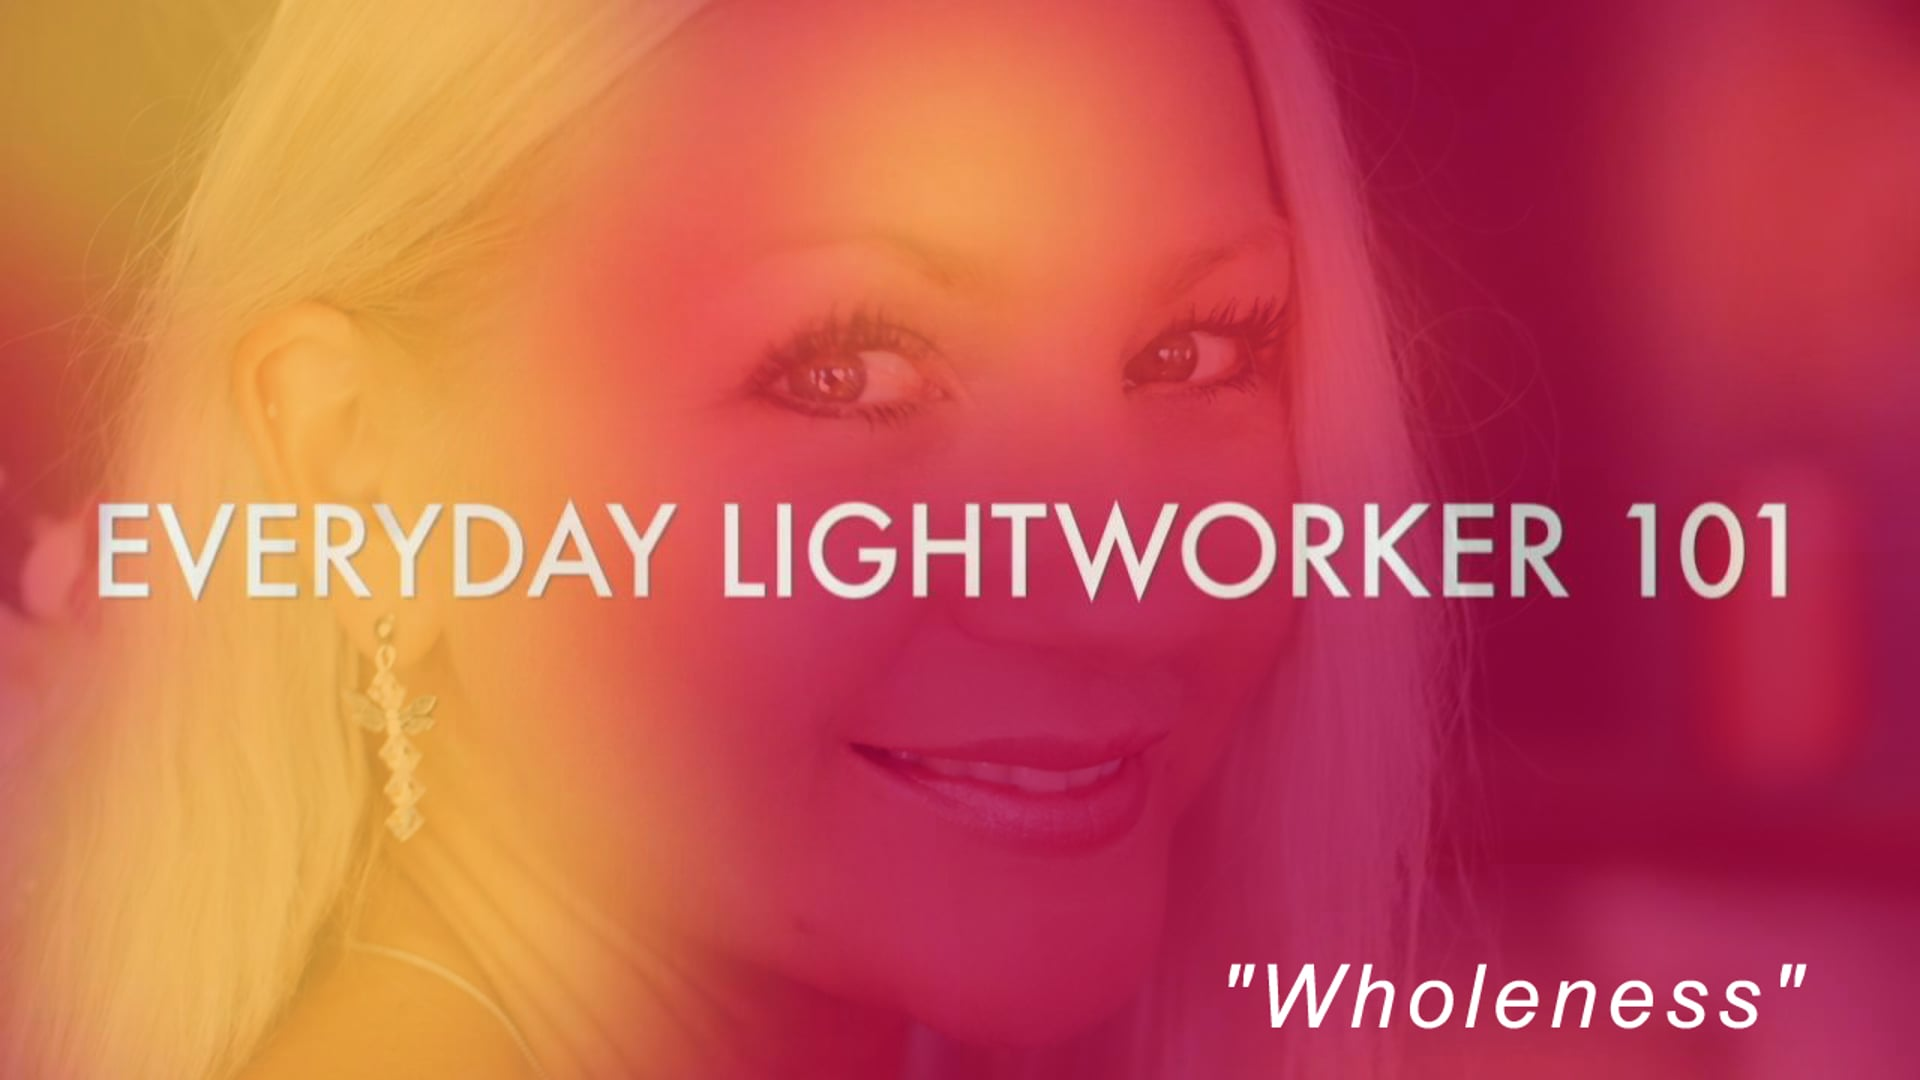 Everyday Lightworker 101: Wholeness